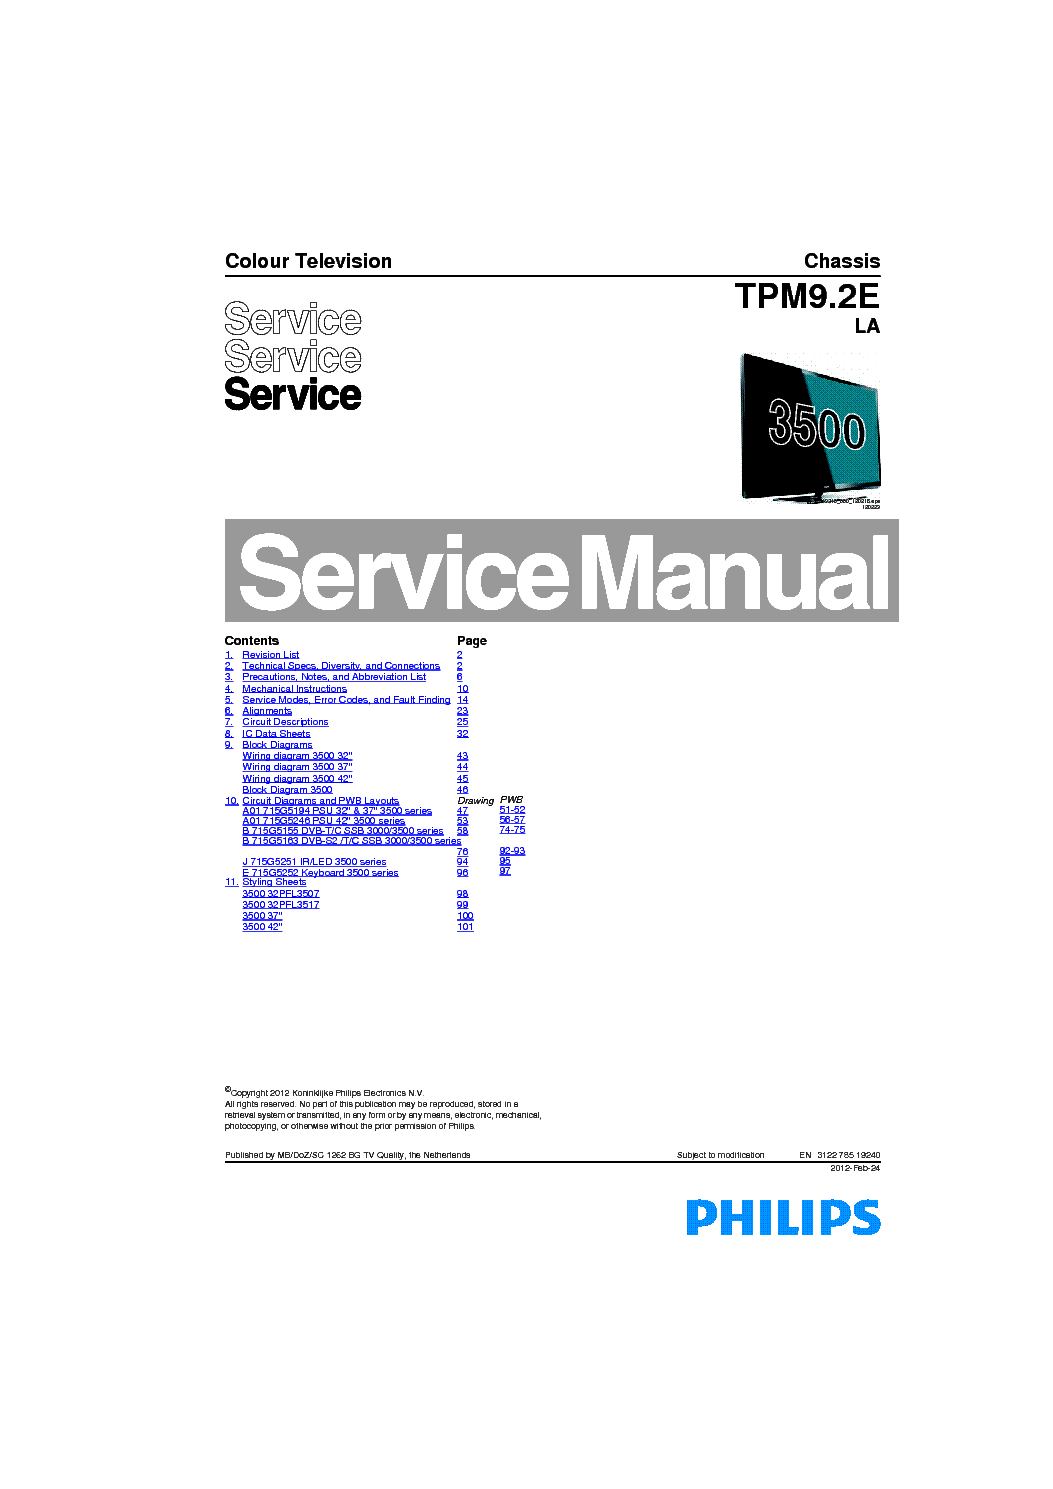 Philips Mx400 Service Manual Related Keywords & Suggestions